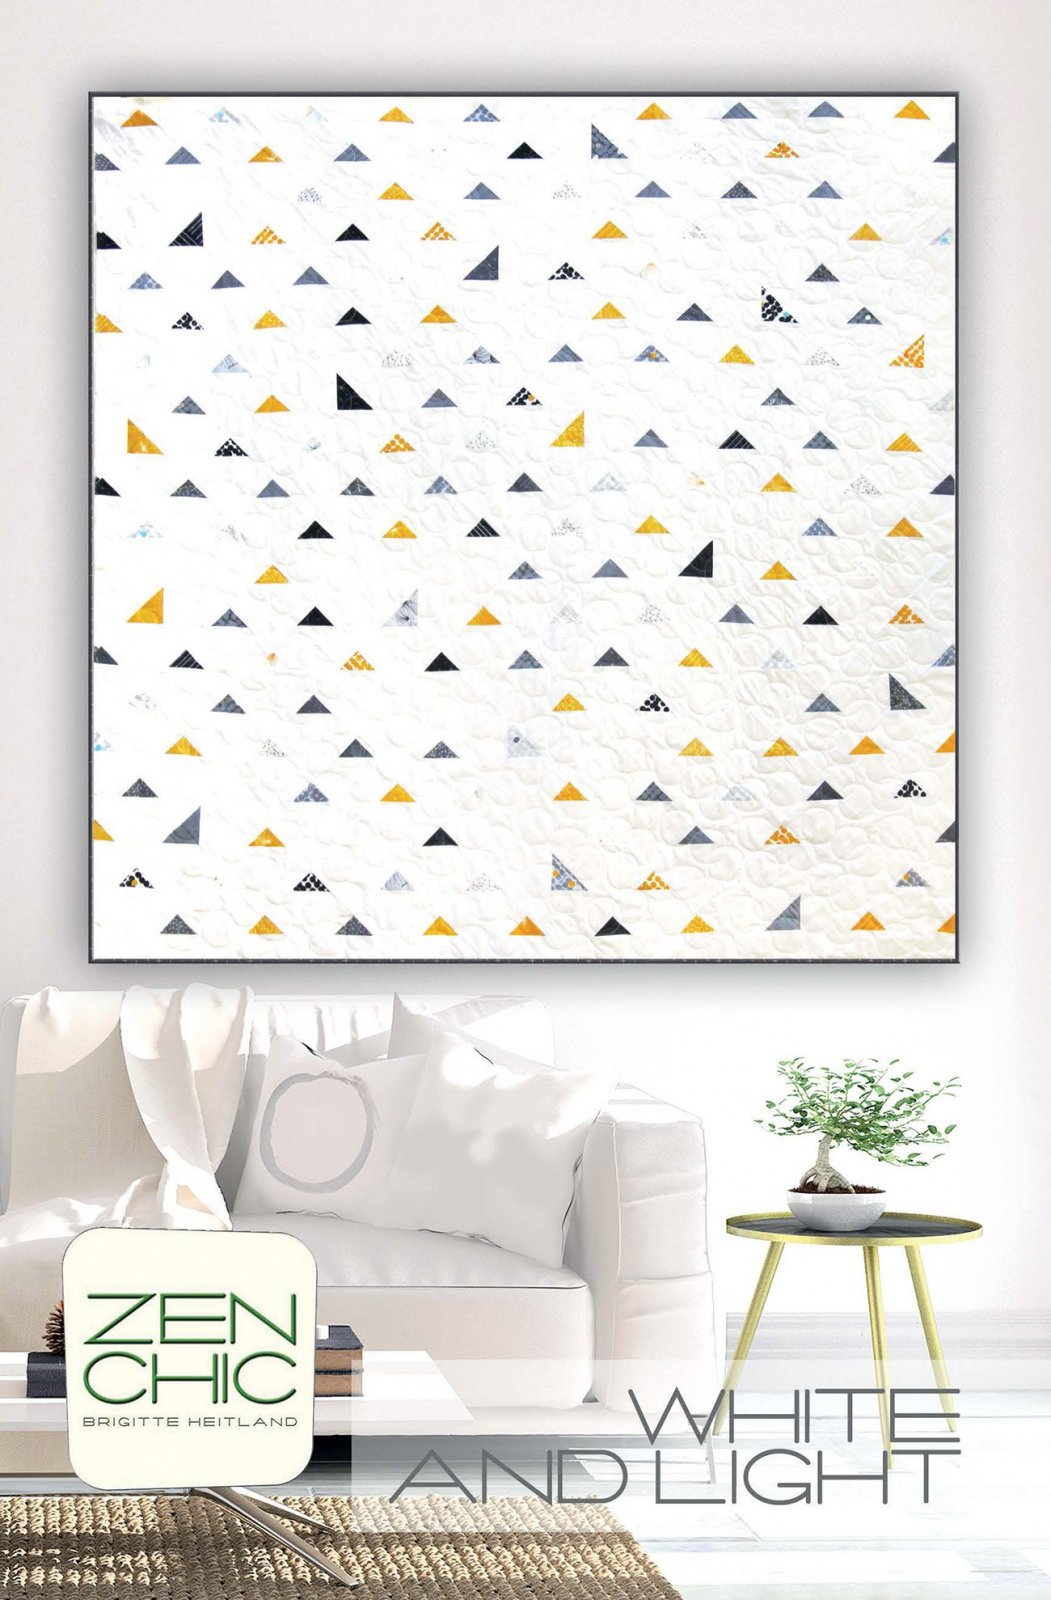 White and Light Quilt